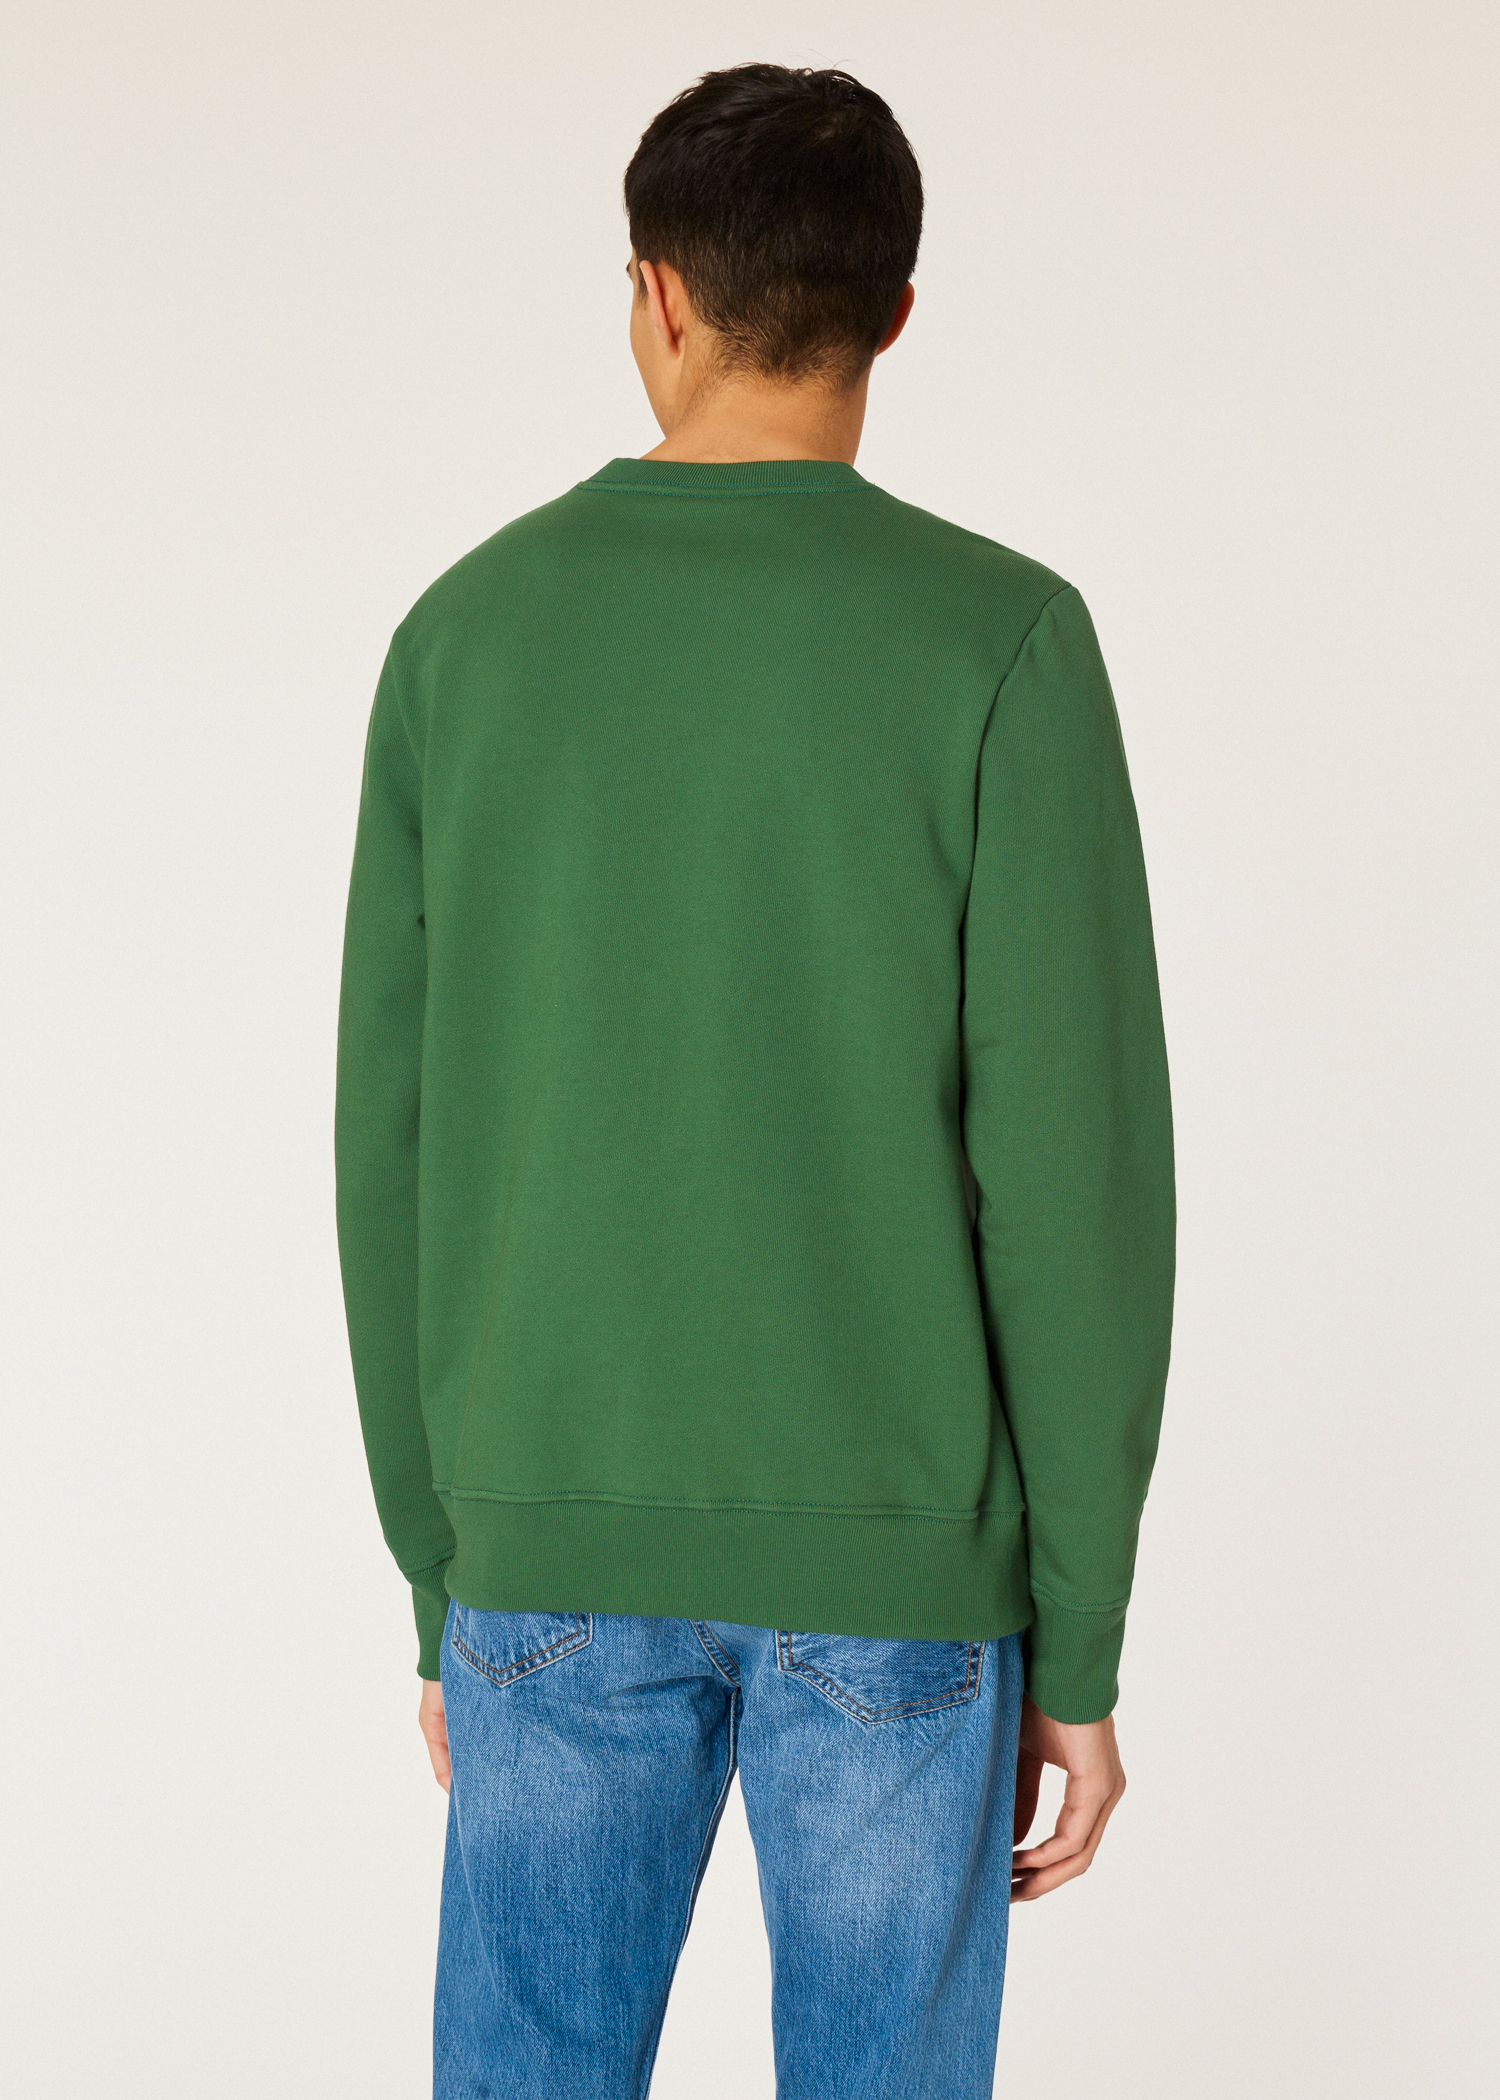 Forêt Bio Paul Homme Sweatshirt Zèbre Logo Vert En Coton Smith 0wE8q86dx